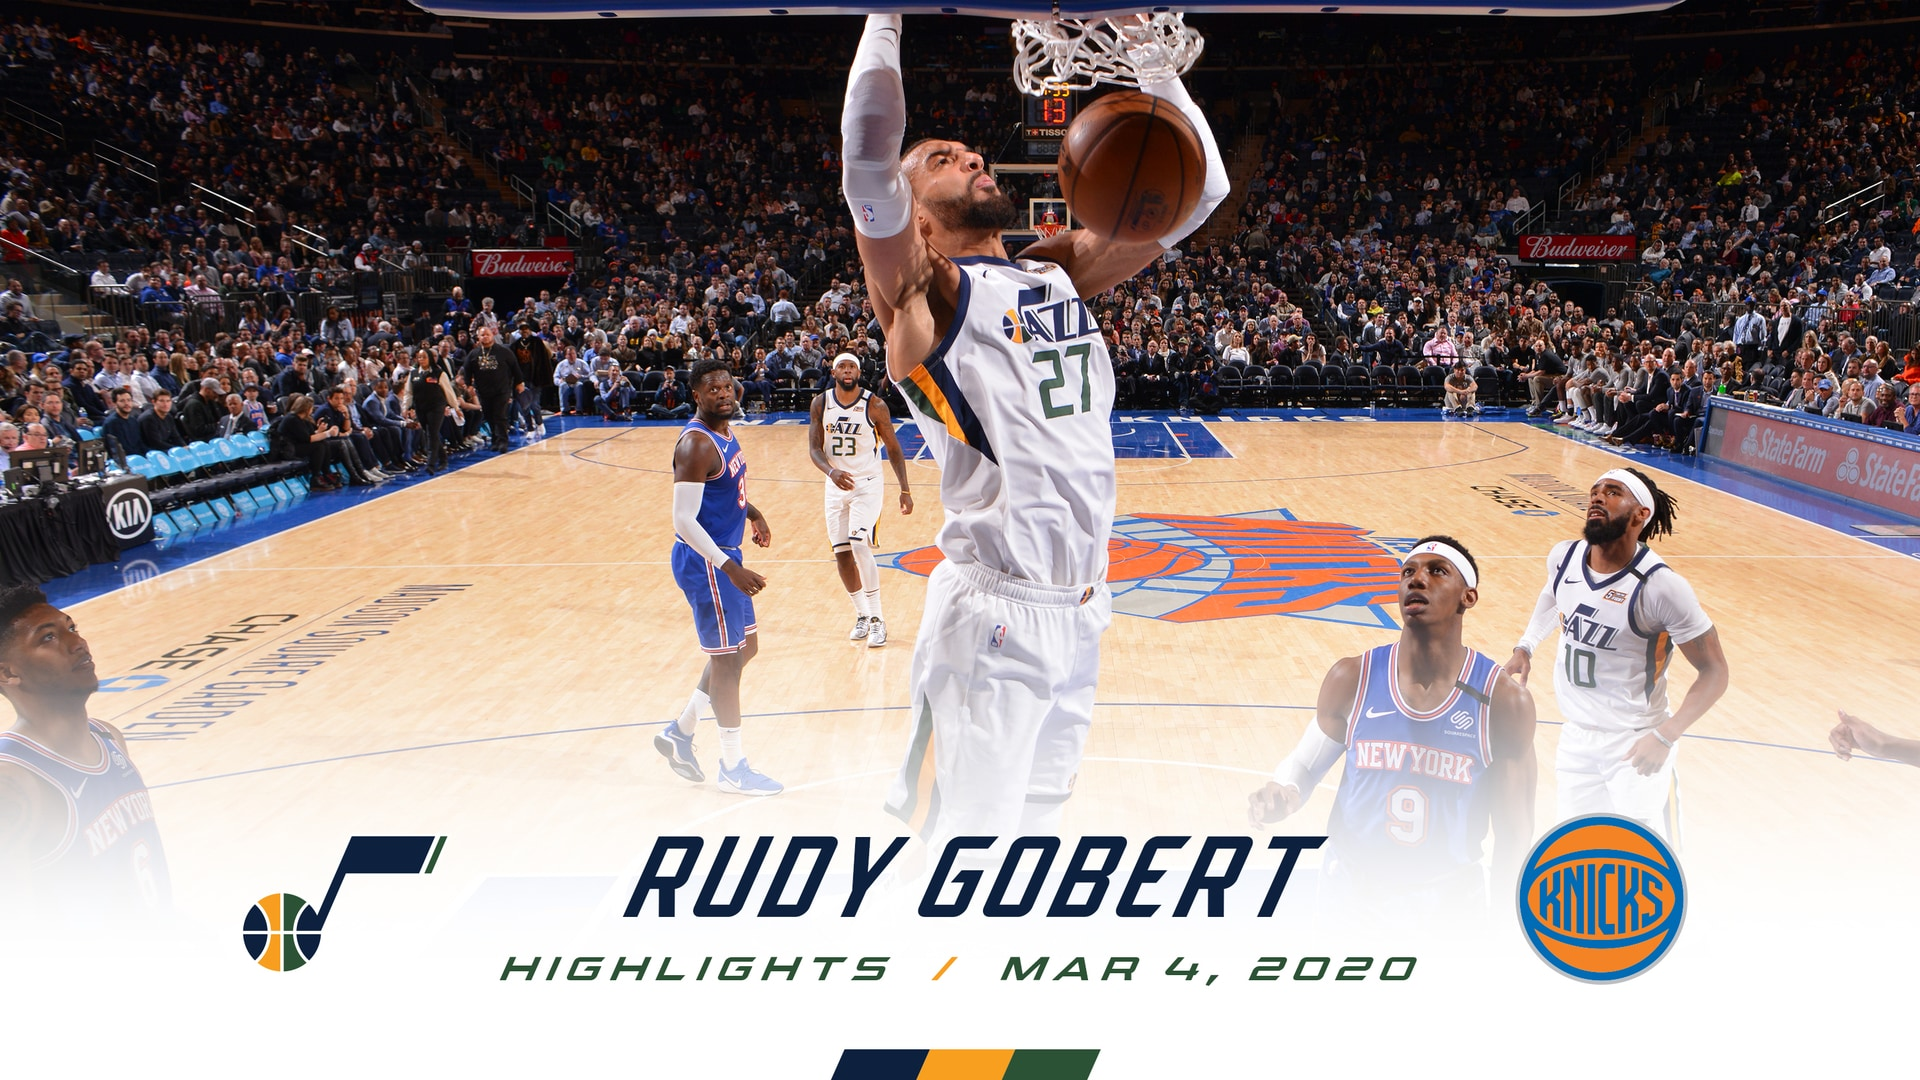 Highlights: Rudy Gobert—18 Points, 14 Rebounds